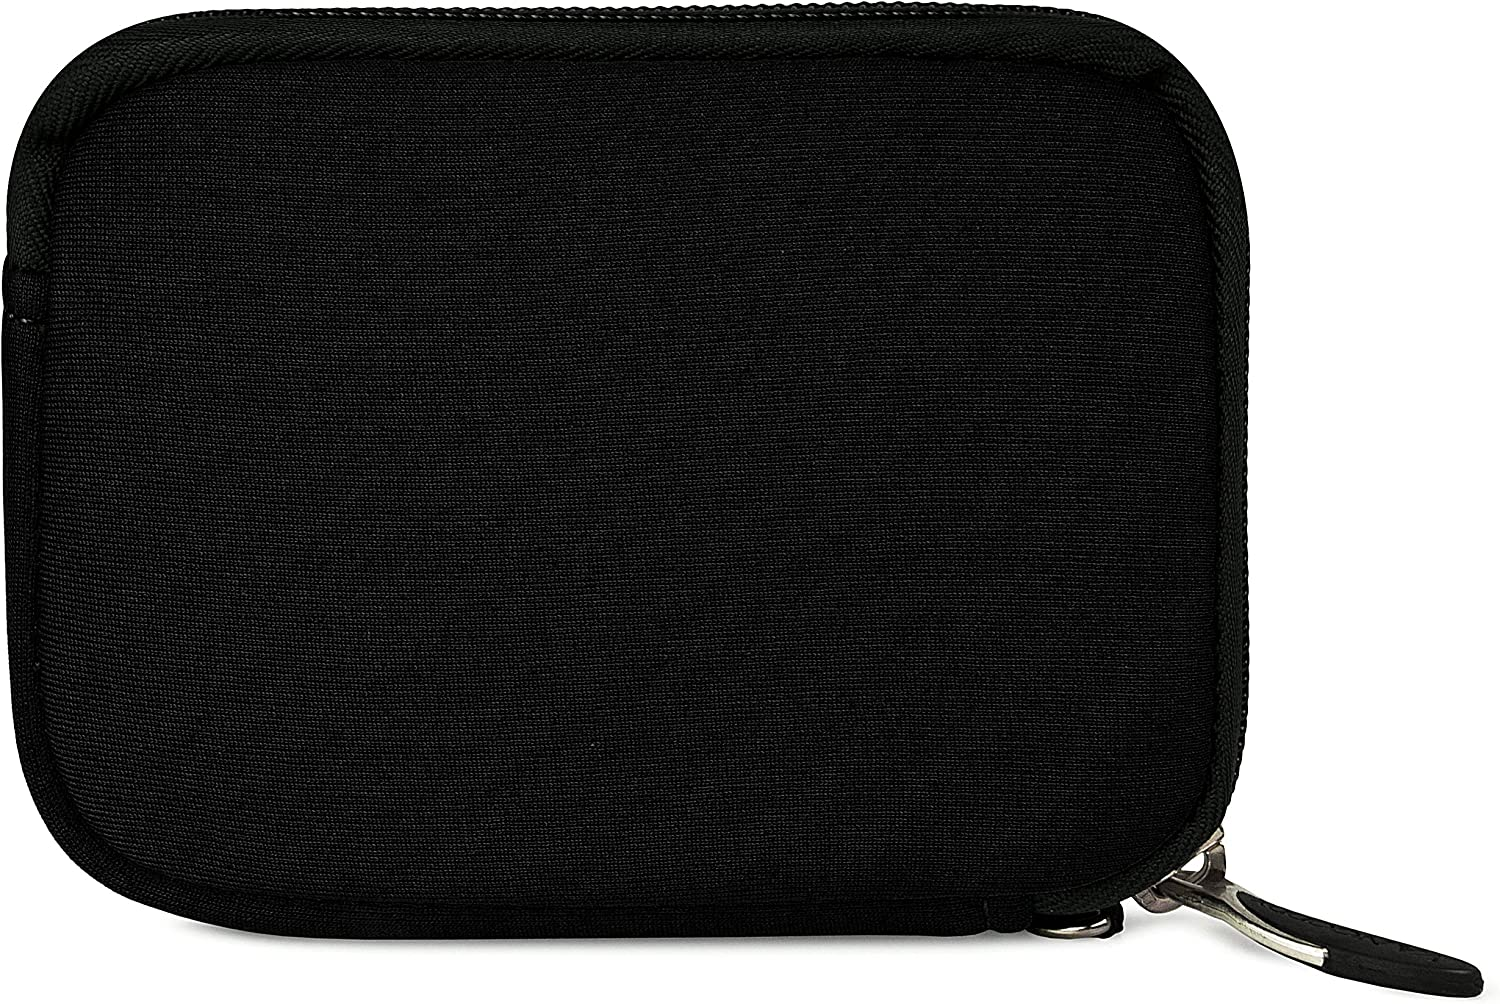 Black VanGoddy Mini Glove Sleeve Pouch Case for SVP WP6800 Waterproof Digital Cameras and Screen Protector